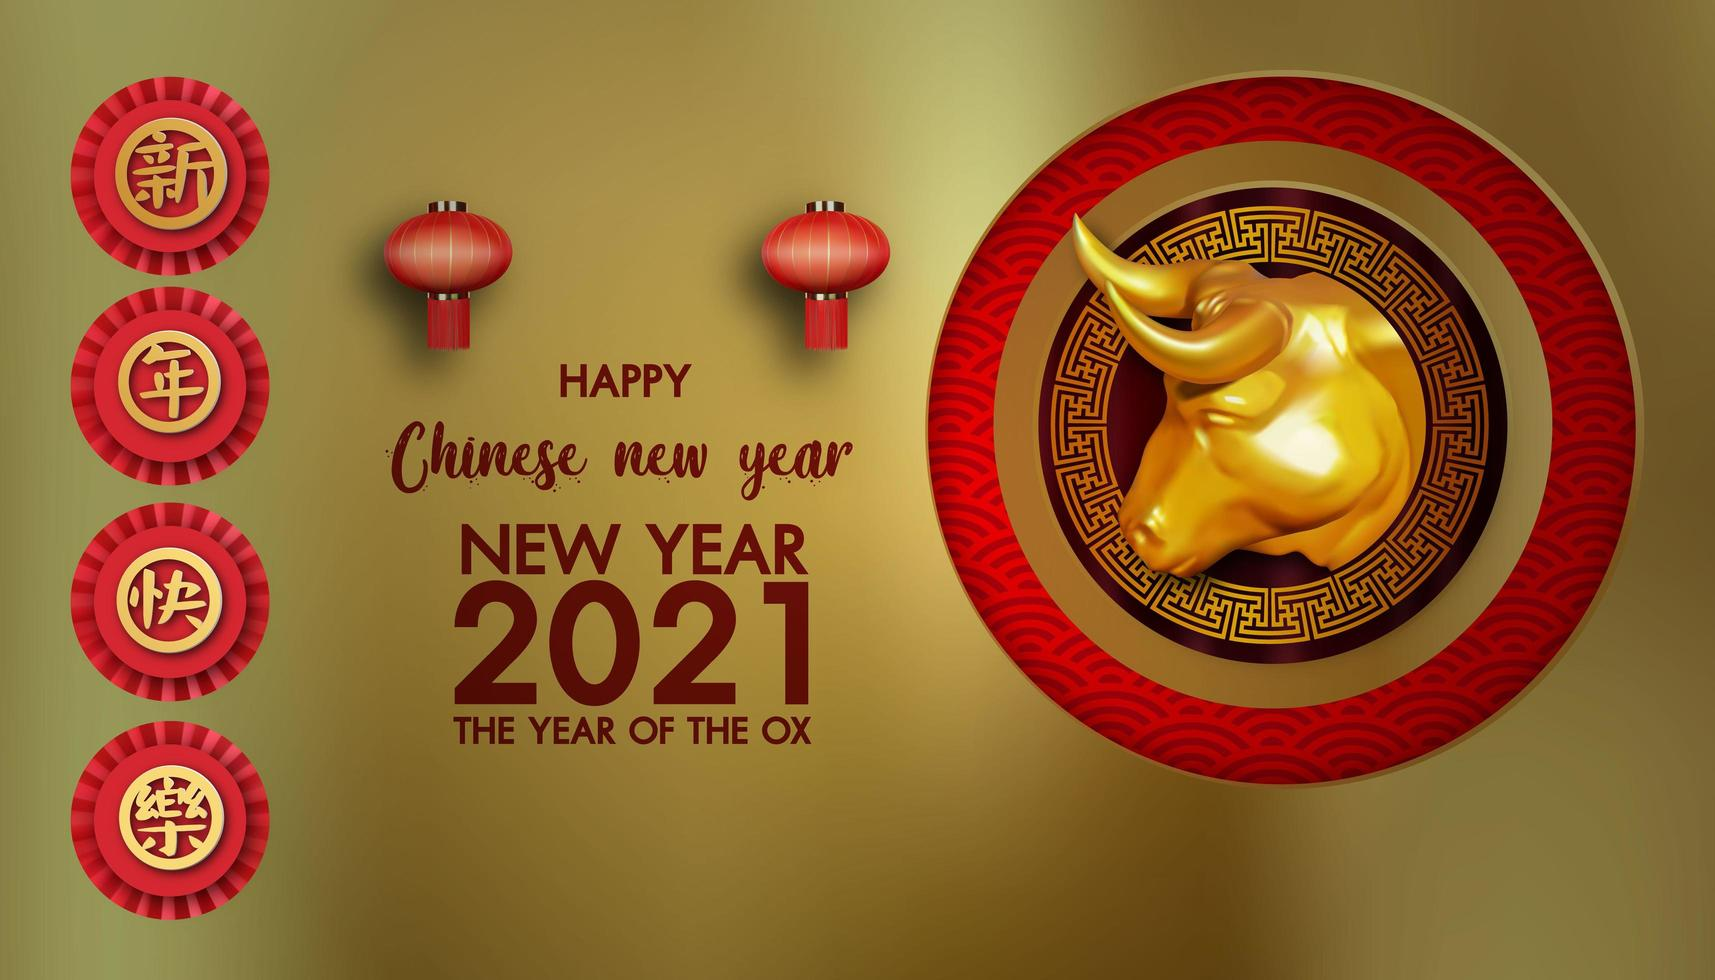 Happy chinese new year 2021, year of the ox vector